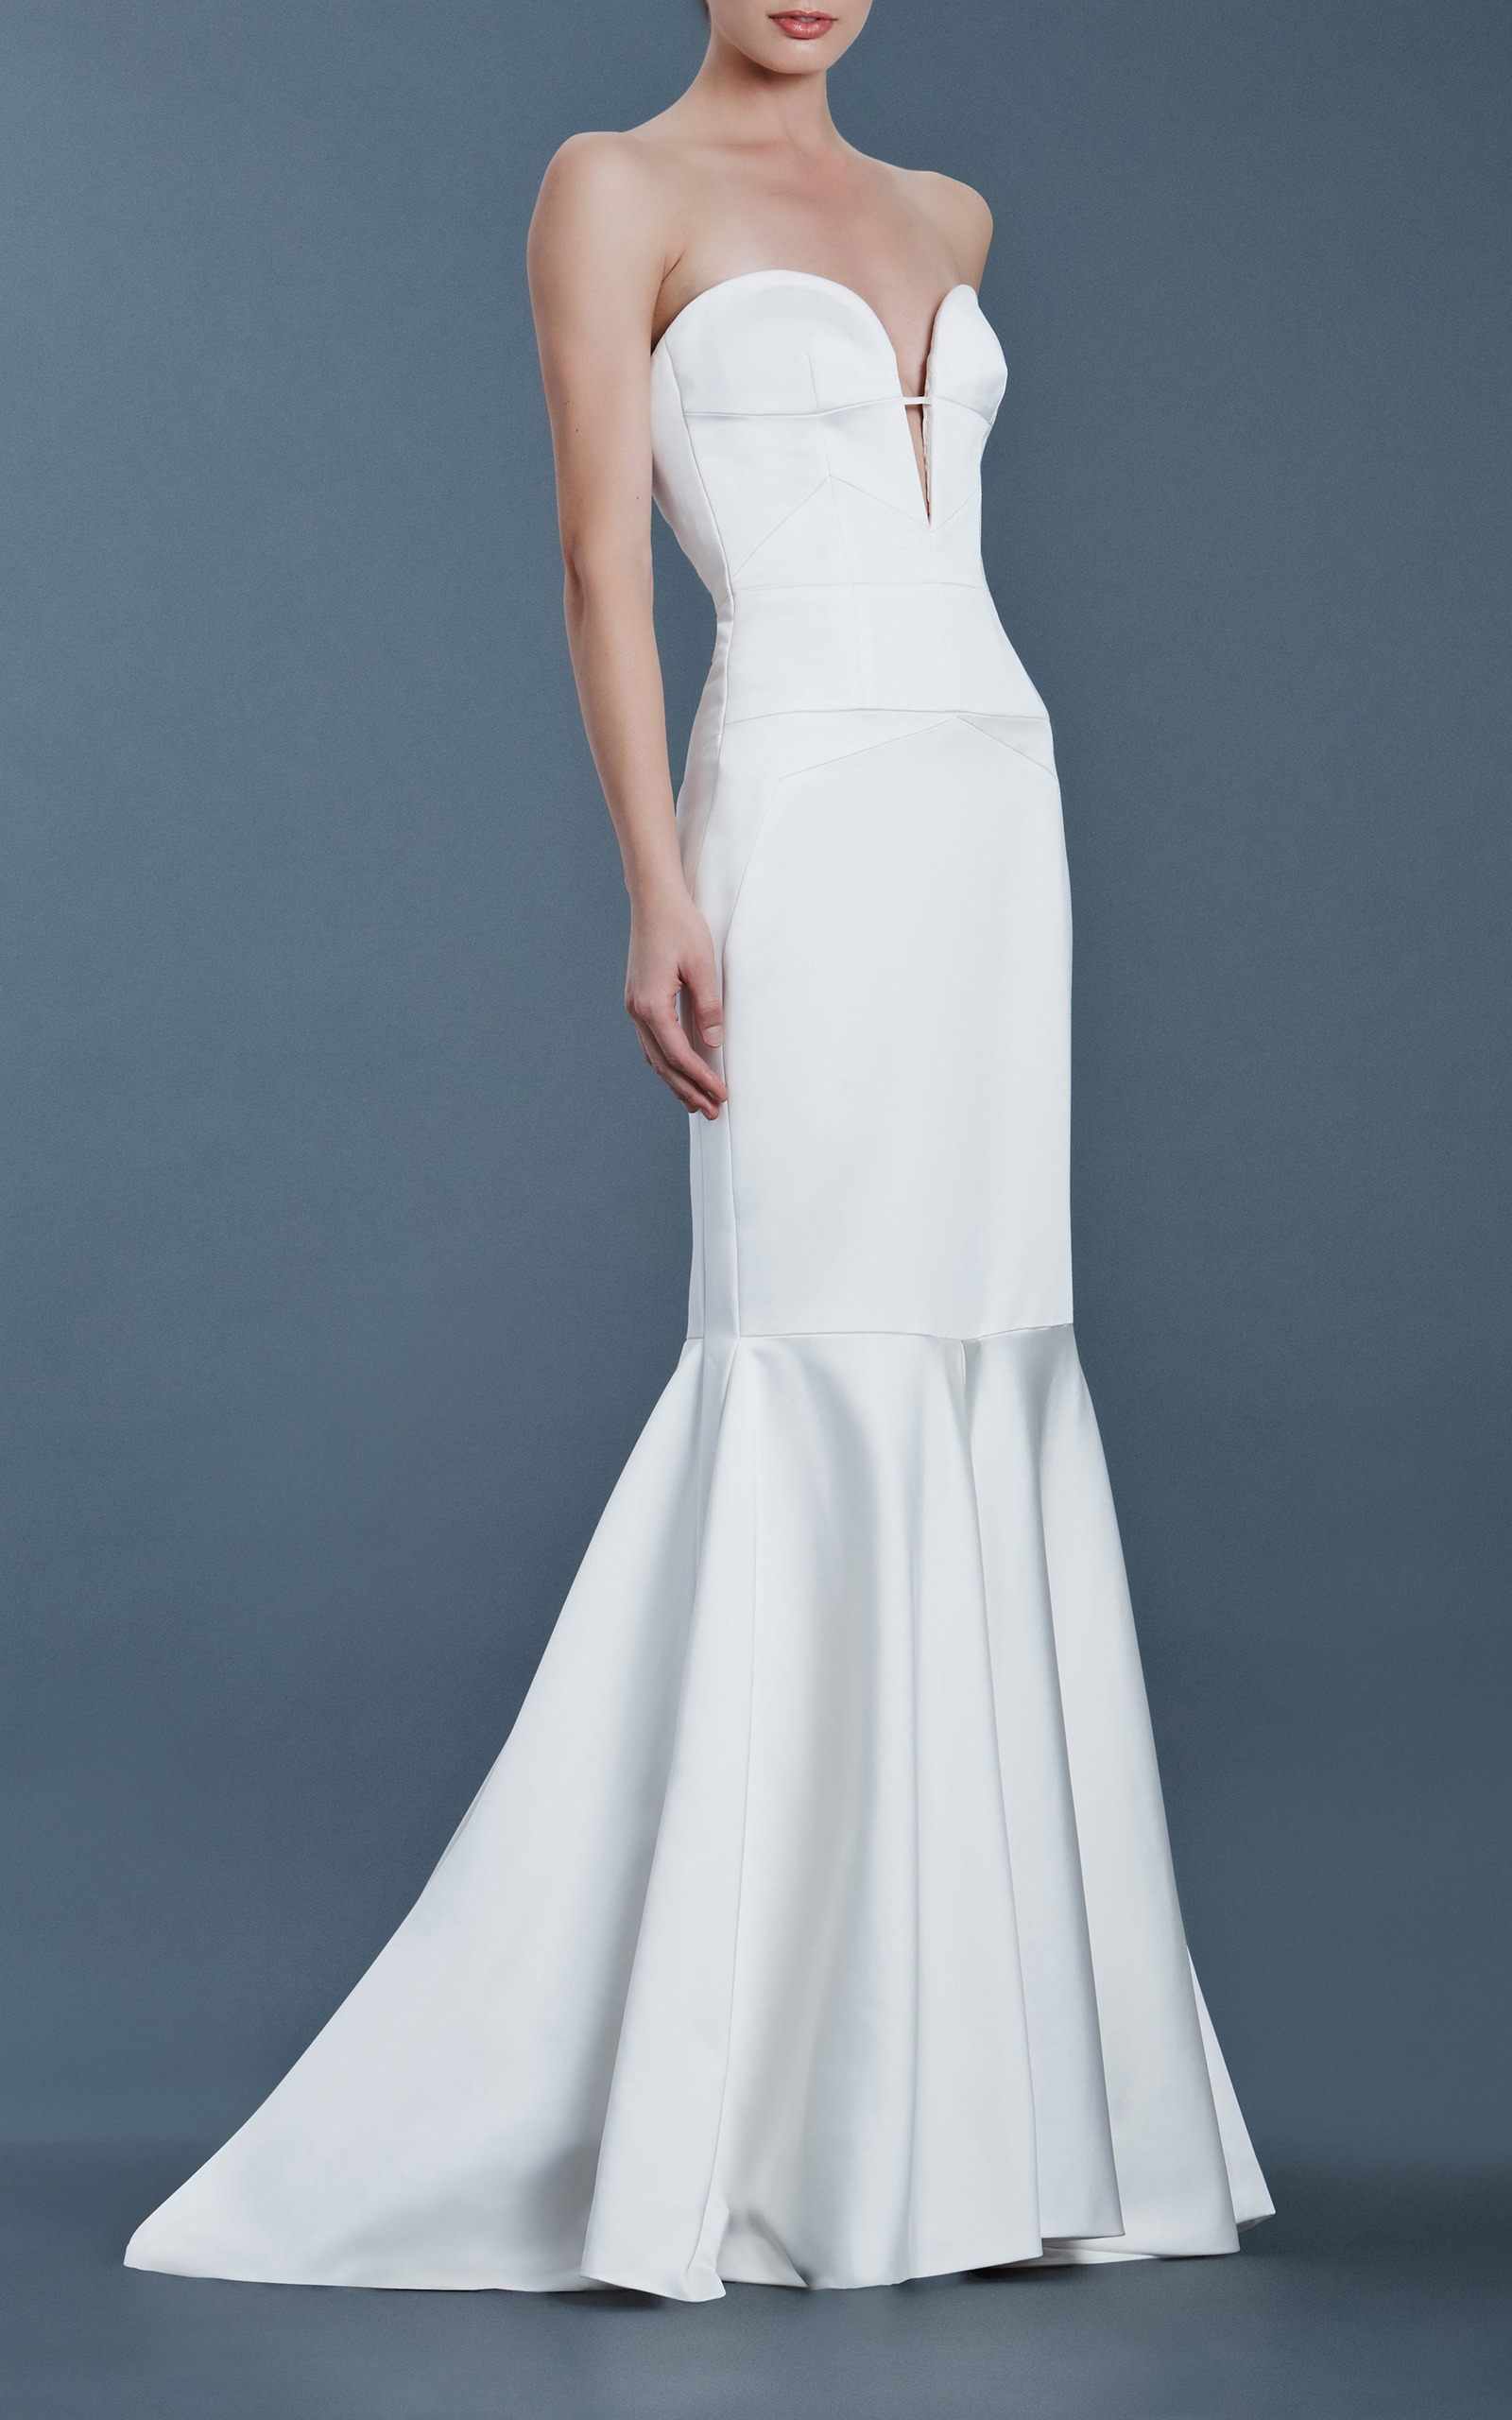 6dfbe9e14b2 J. Mendel Bridal Classics Collection Trunkshow